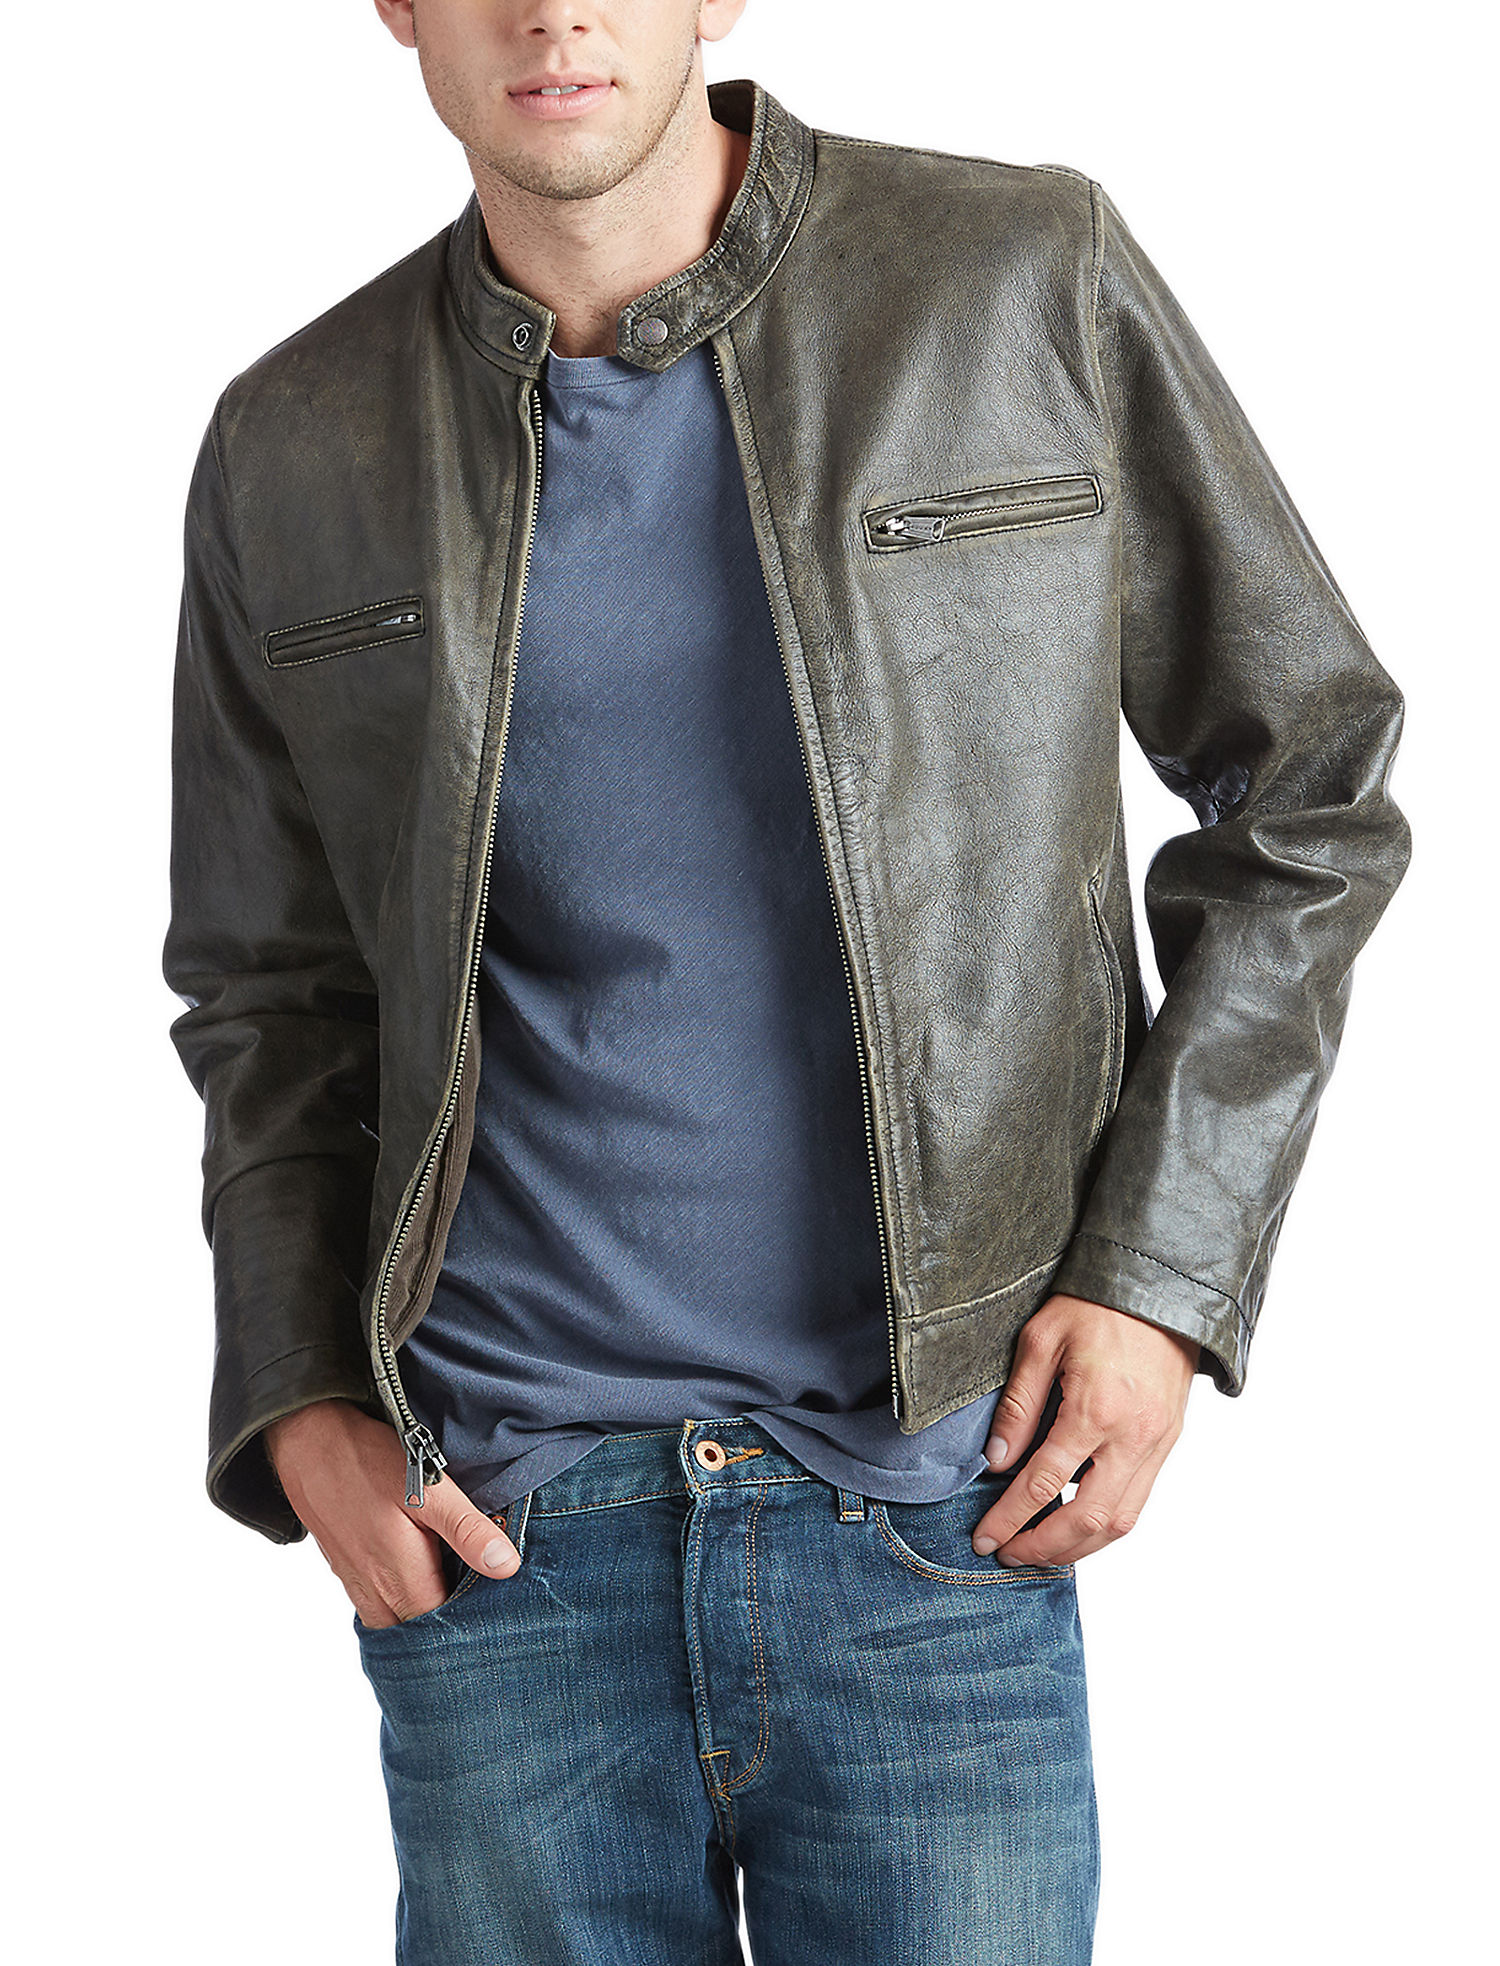 Mens Jackets On Sale | Up to 60% Off Fashion Sale Styles | Lucky Brand